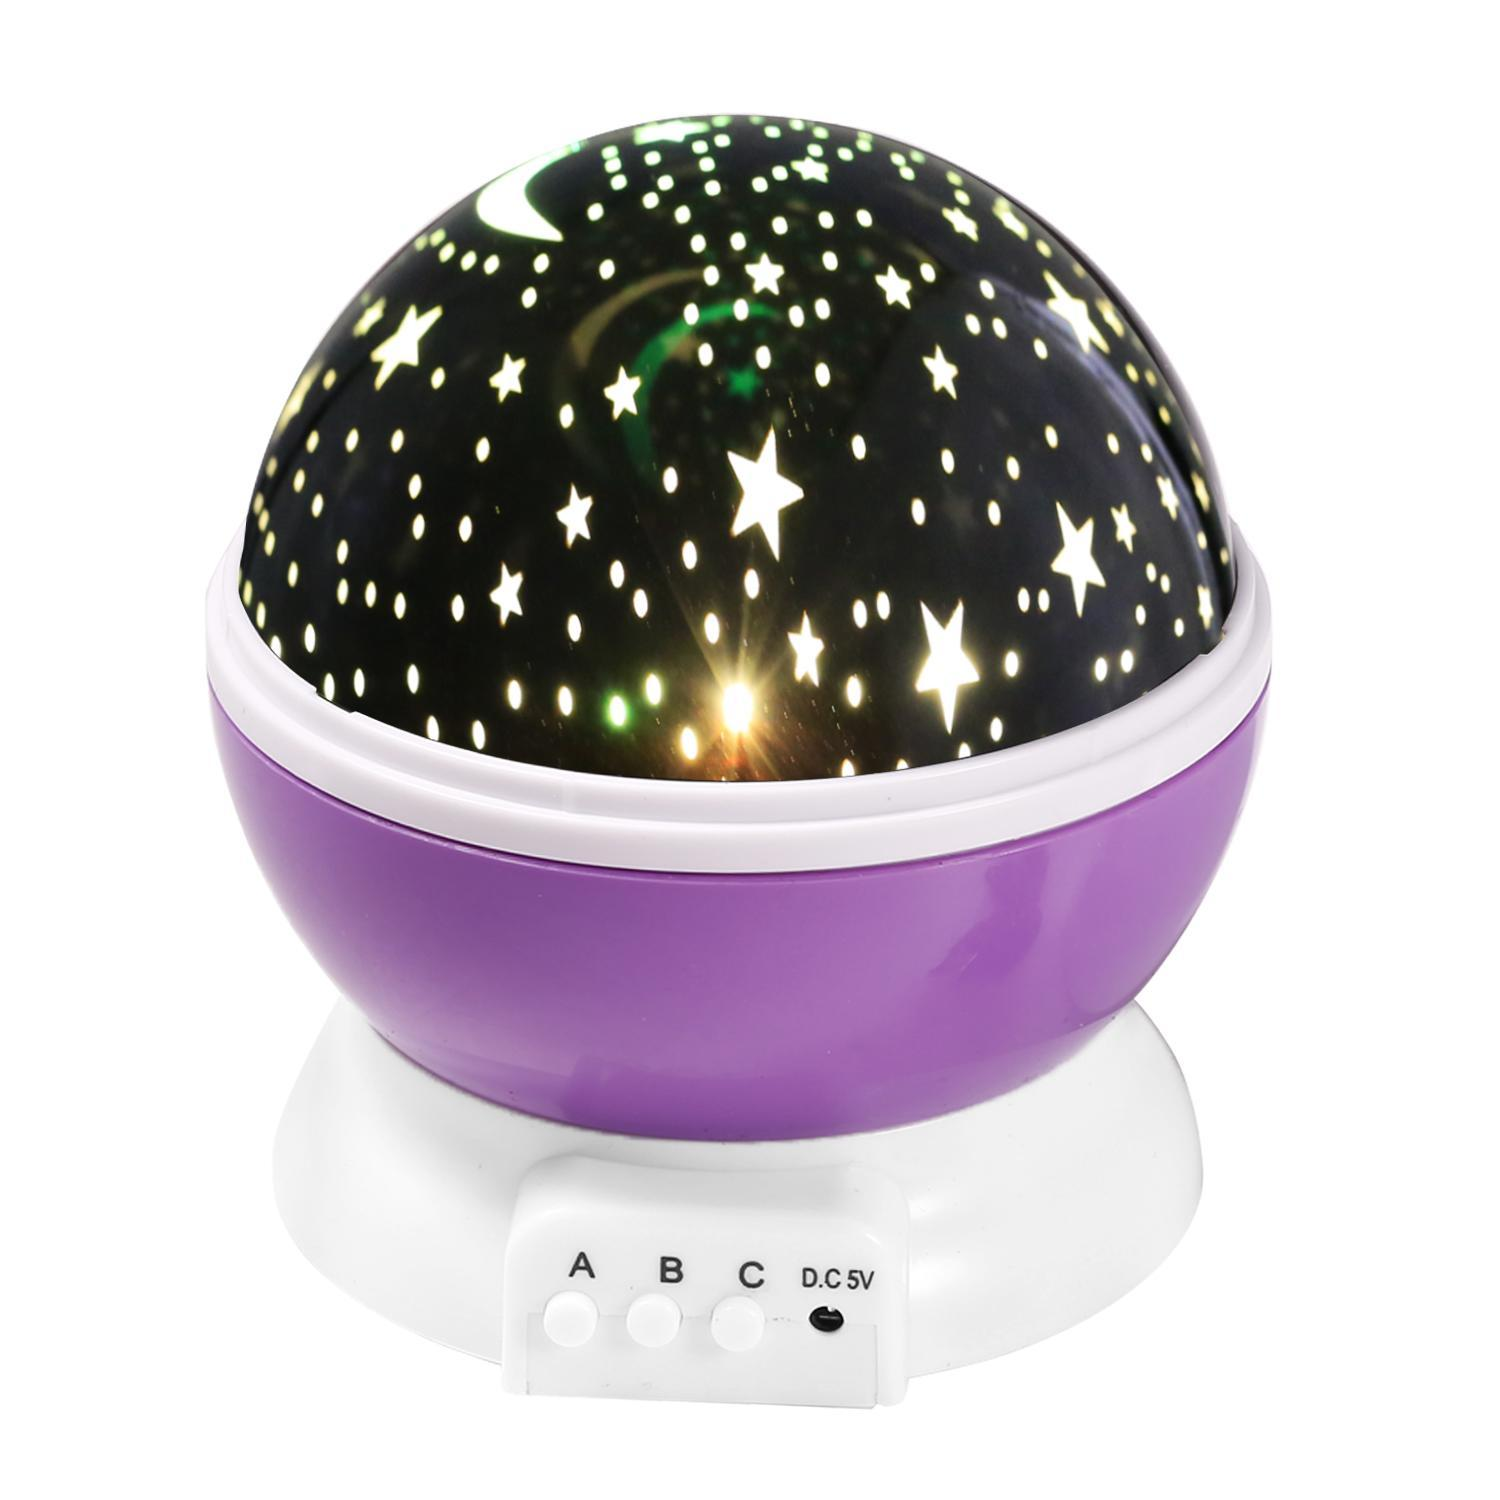 Sleep Soother Aurora Projection LED Night Light Lamp with 8 Lighting Mode & Speaker, Relaxing Light Show for Baby Kids and Adults, Mood Light for Baby Nursery Bedroom Living Room  Decor SPHP